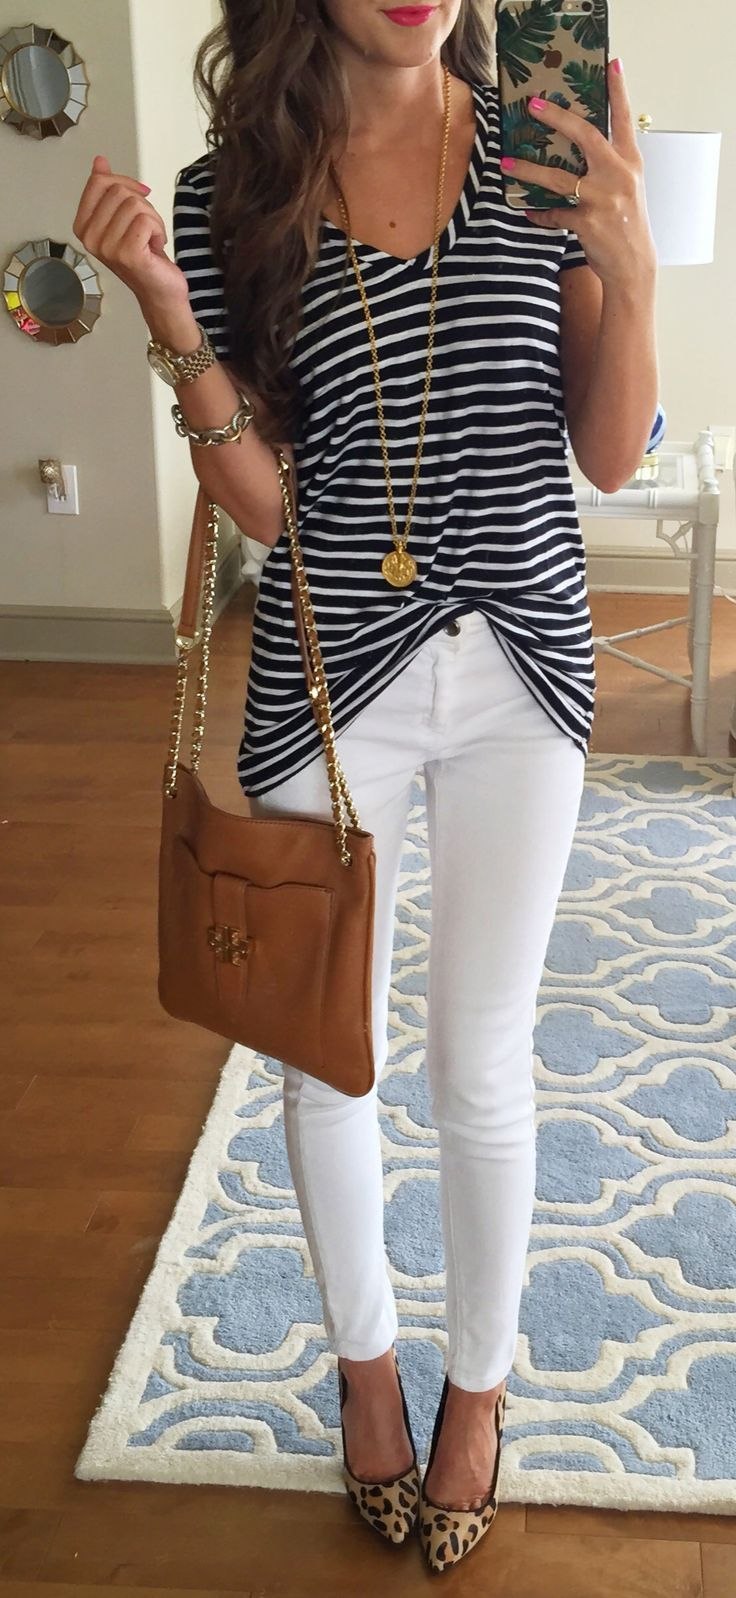 177 best images about casual spring/summer wear on pinterest